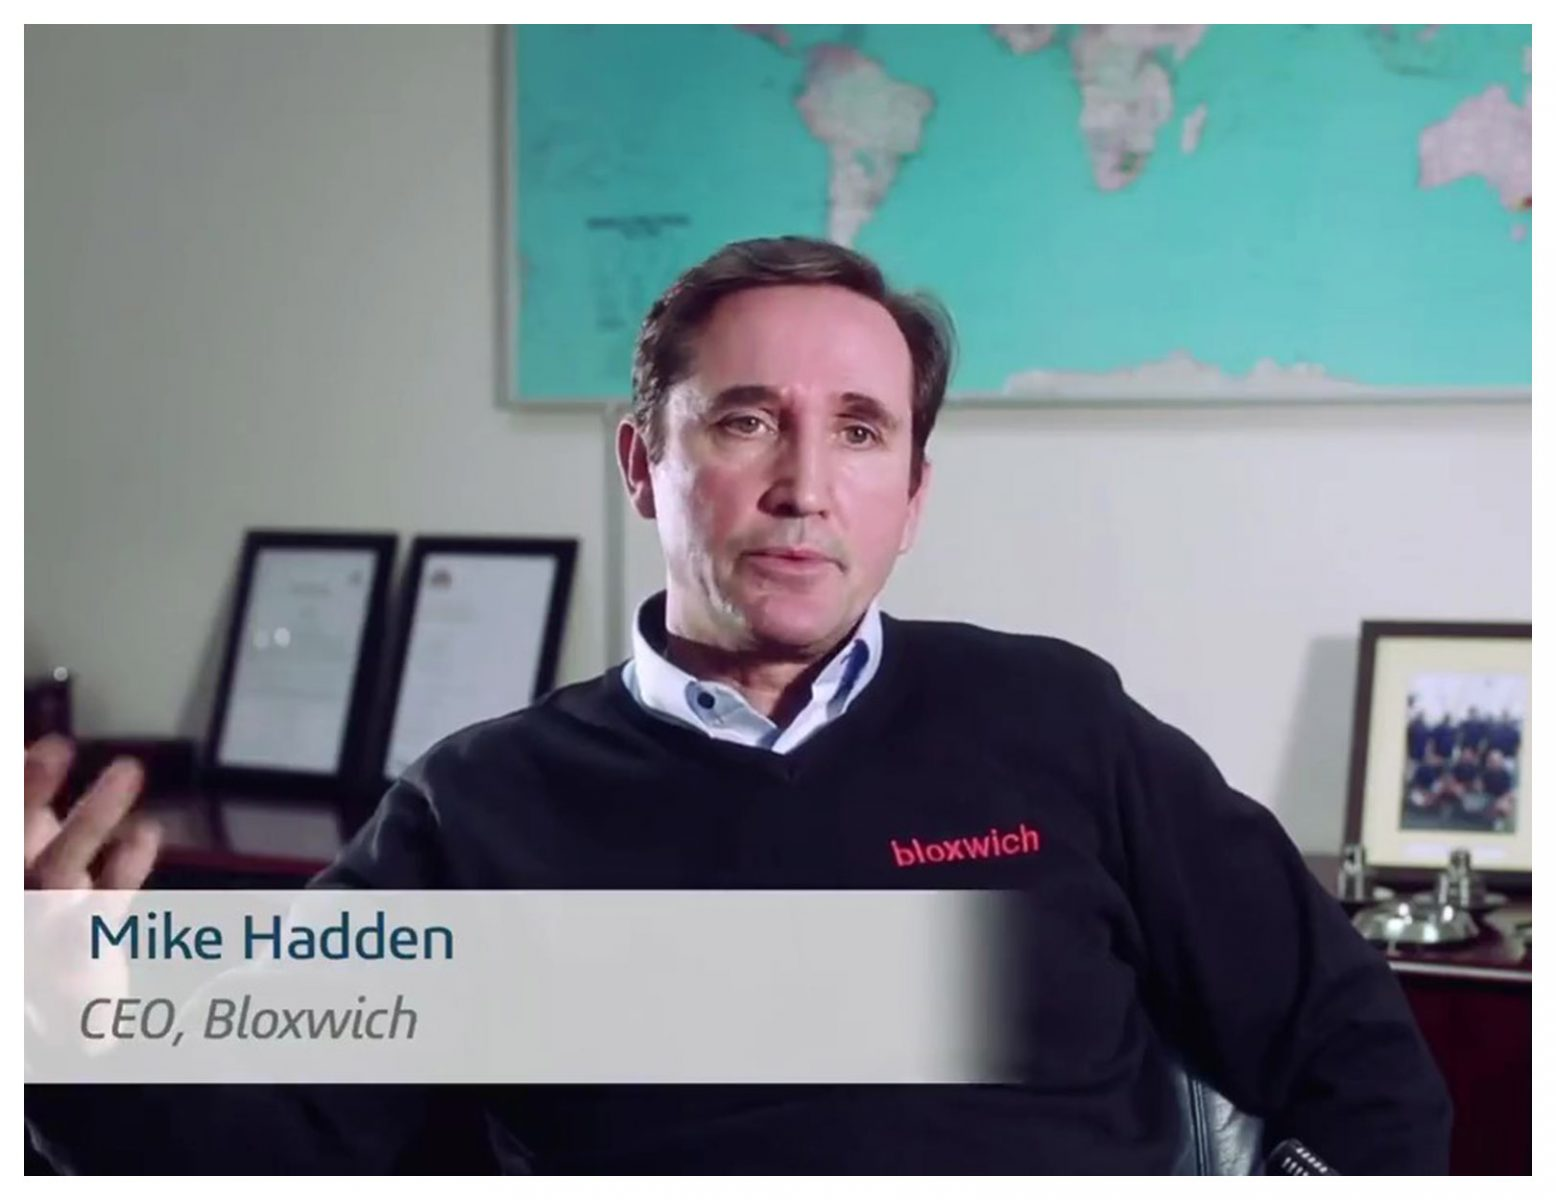 Photo of Mike Hadden CEO